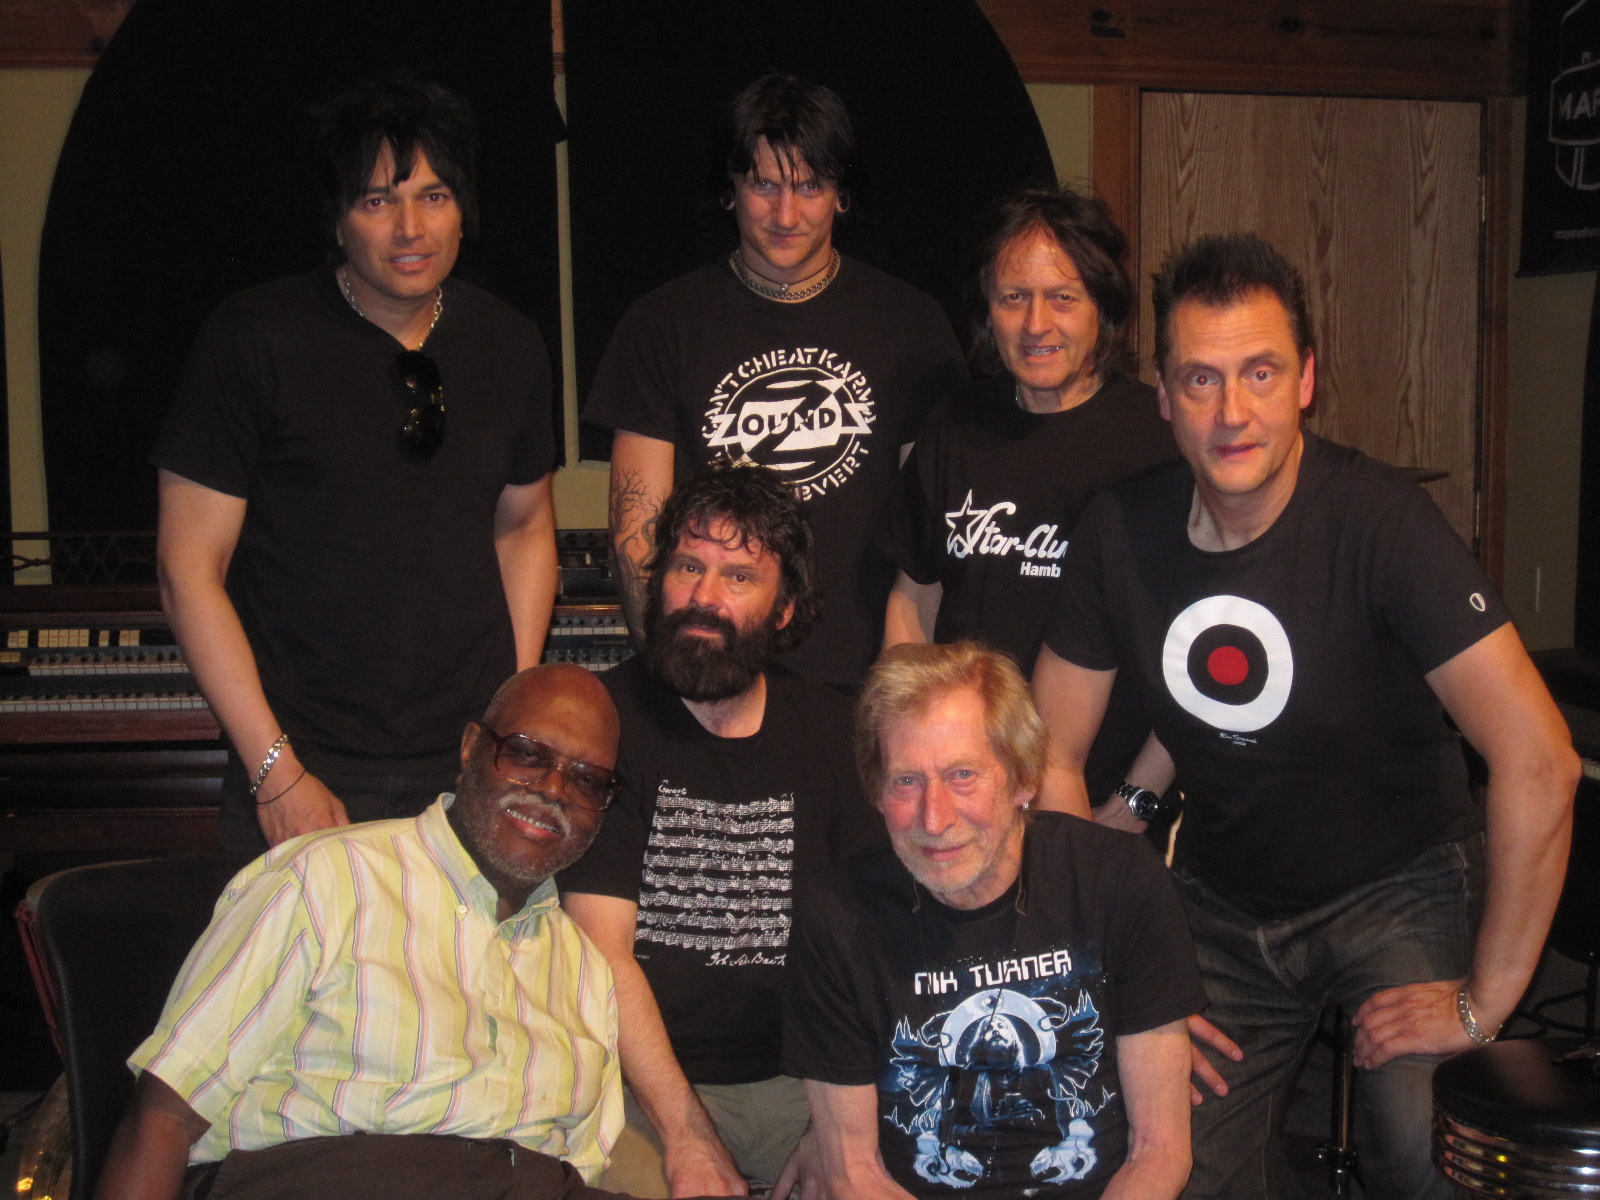 The whole crew. Back row, Brian (Cleopatra records), Jason Willer, Jeff Piccinini (Geoff Myles), Jürgen Engler. Front row: Big Jay McNeely, Nicky Garratt and Nik Turner. Click image to enlarge.